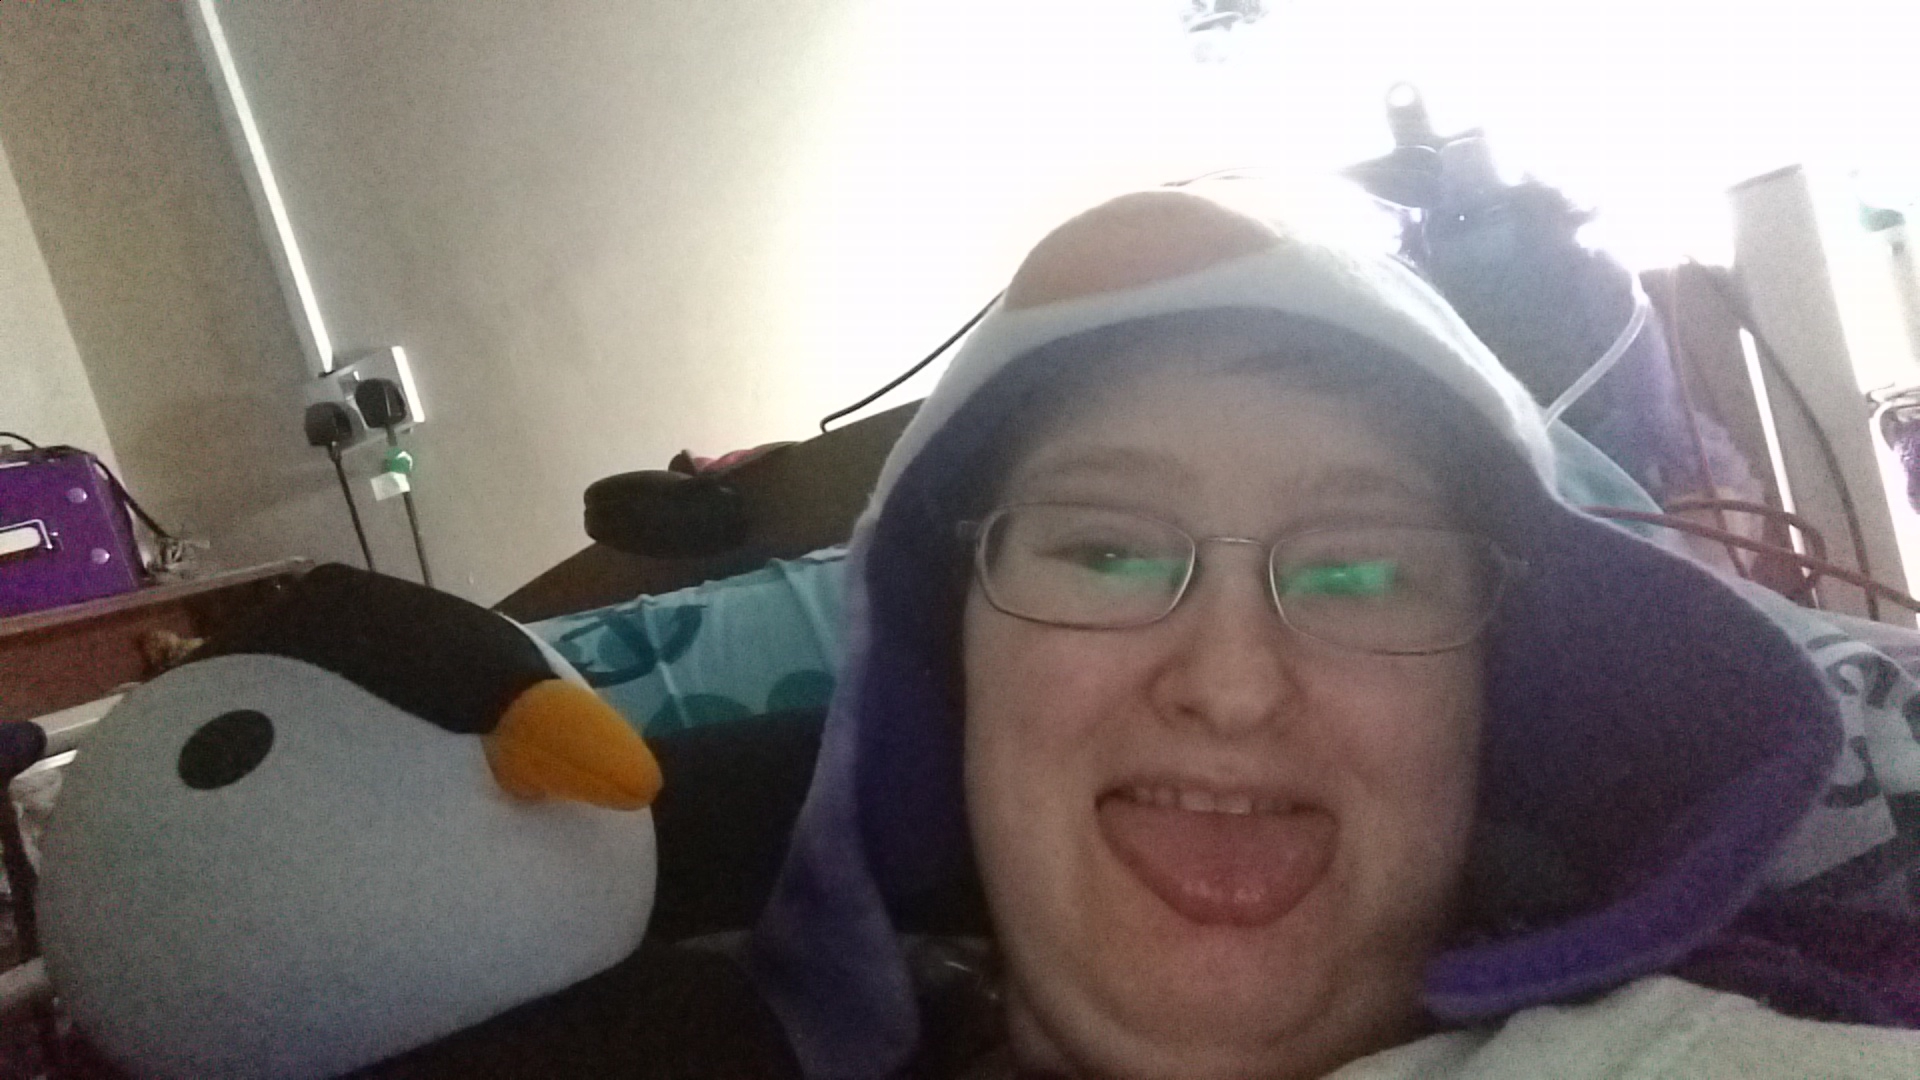 Danni is lying in bed wearing a purple penguin hat and sticking their tongue out.